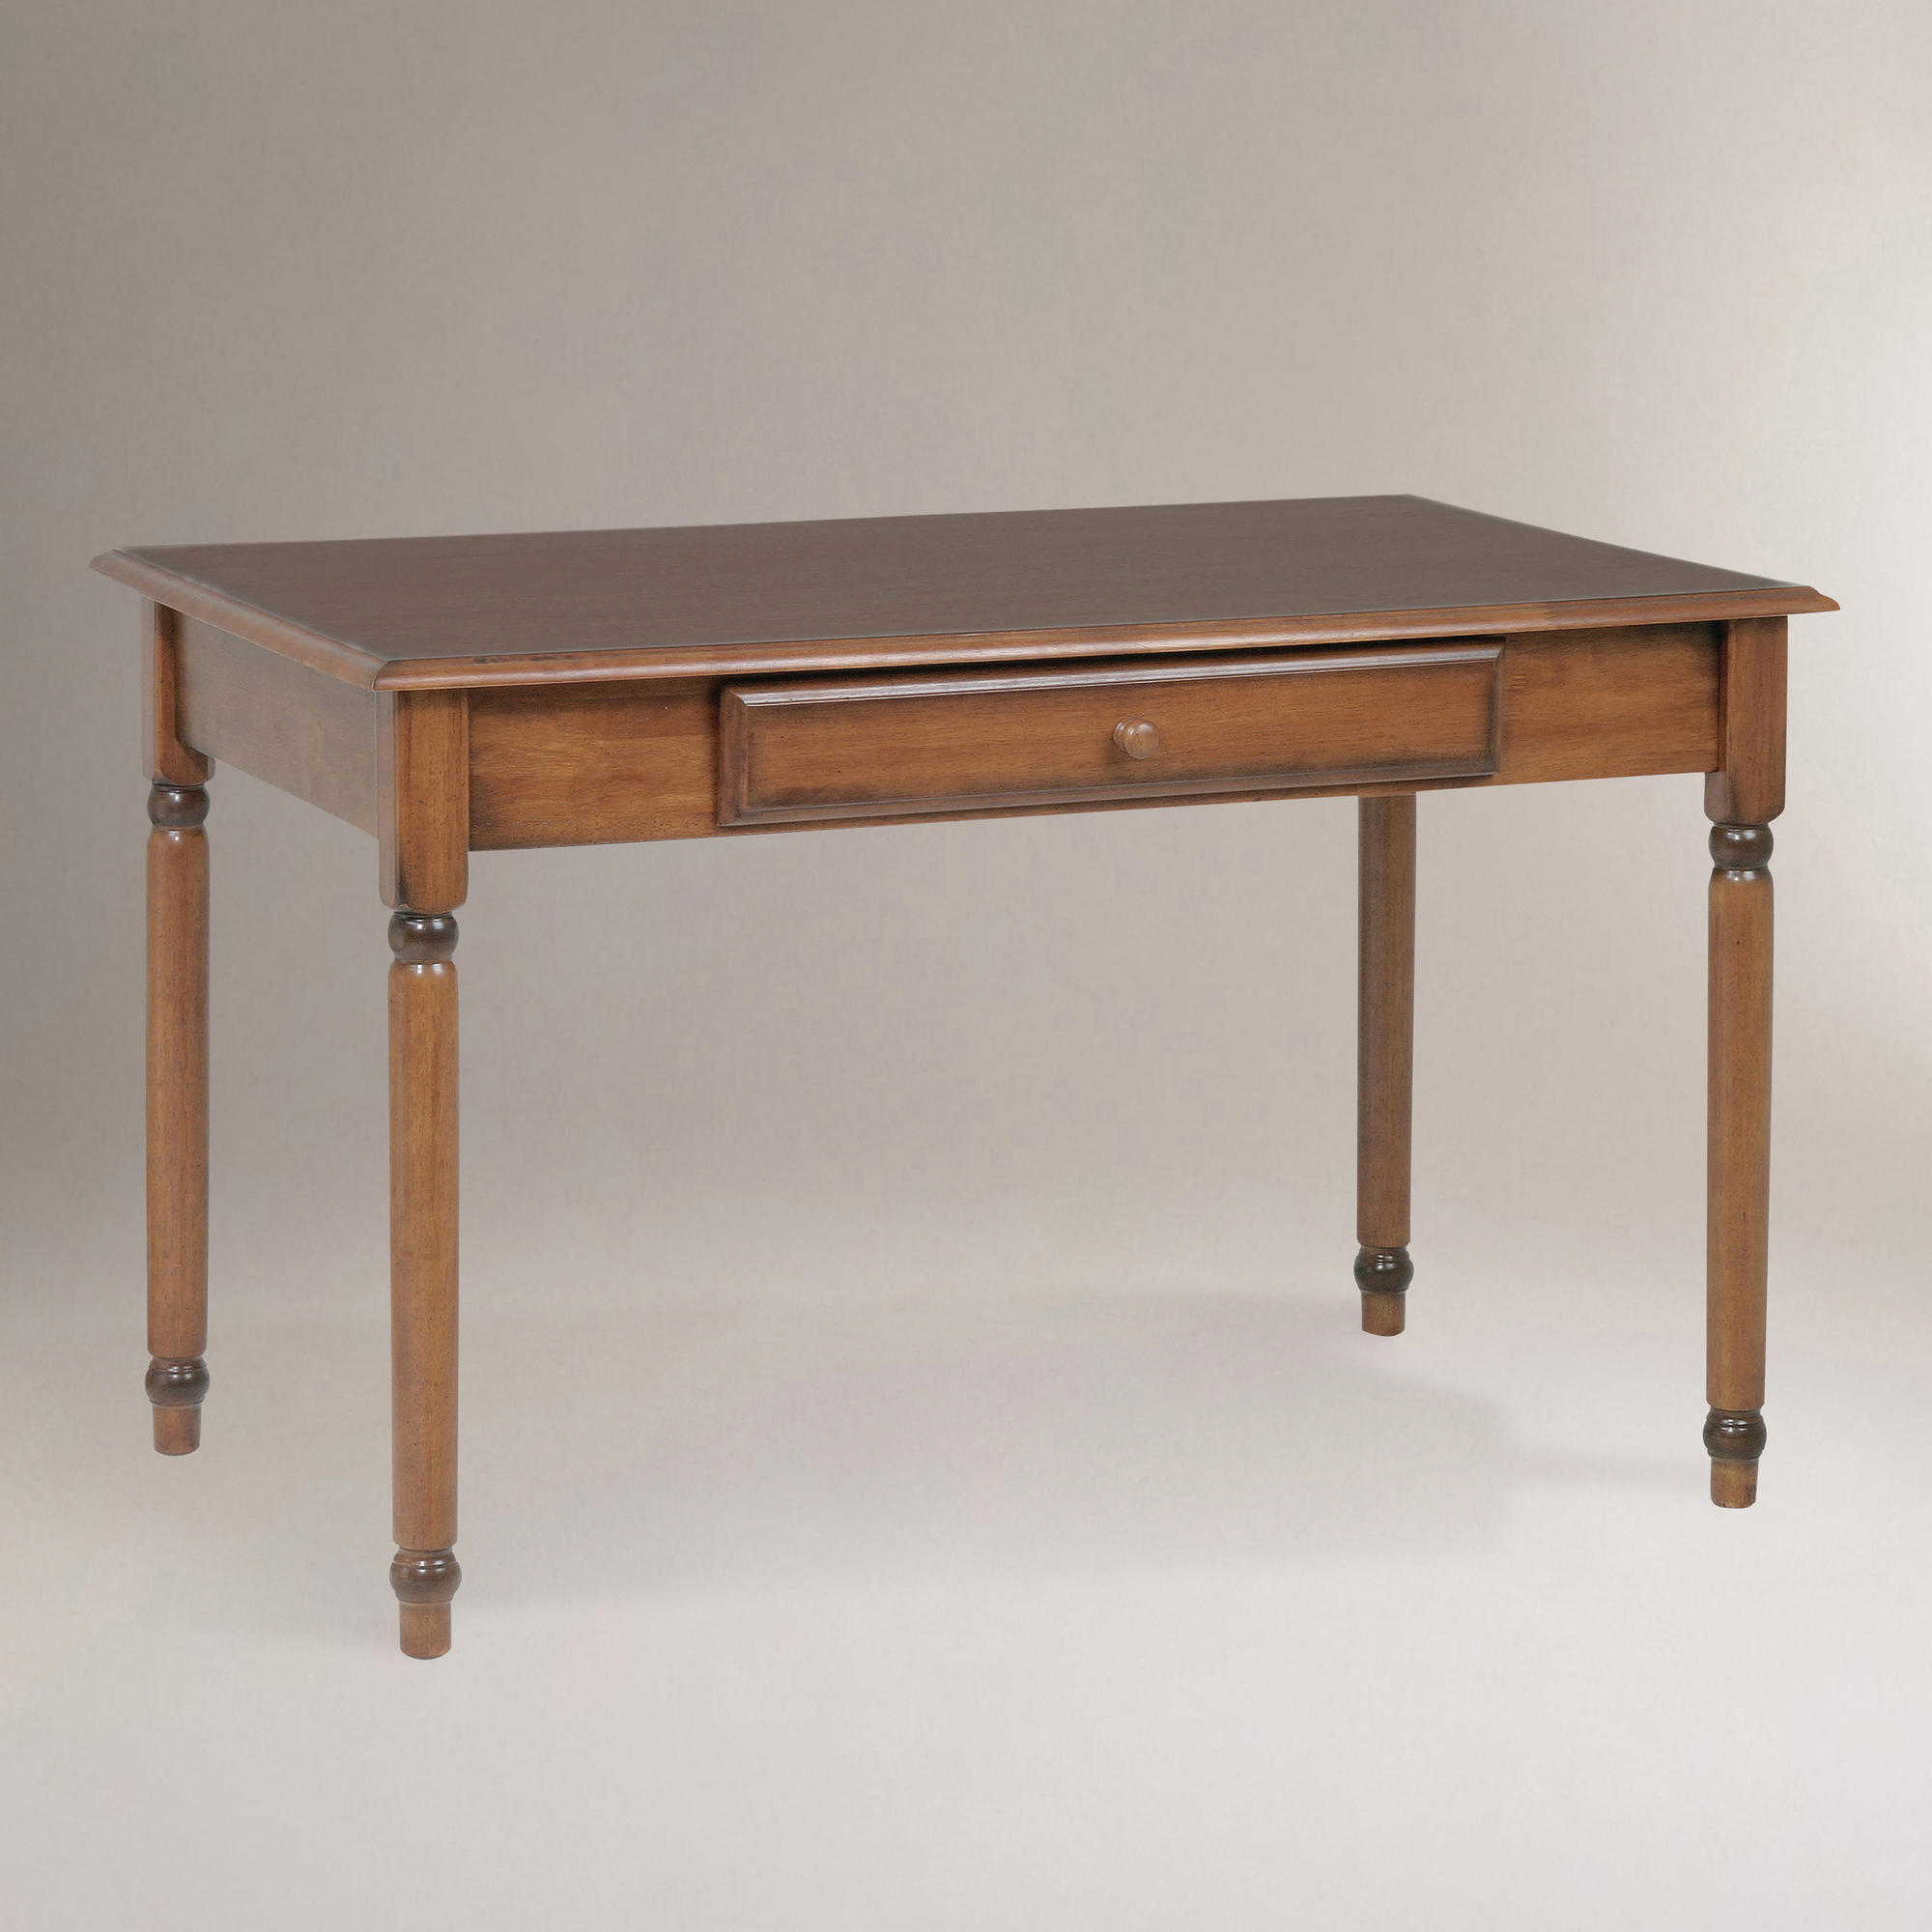 Darby Desk From Cost Plus World Market